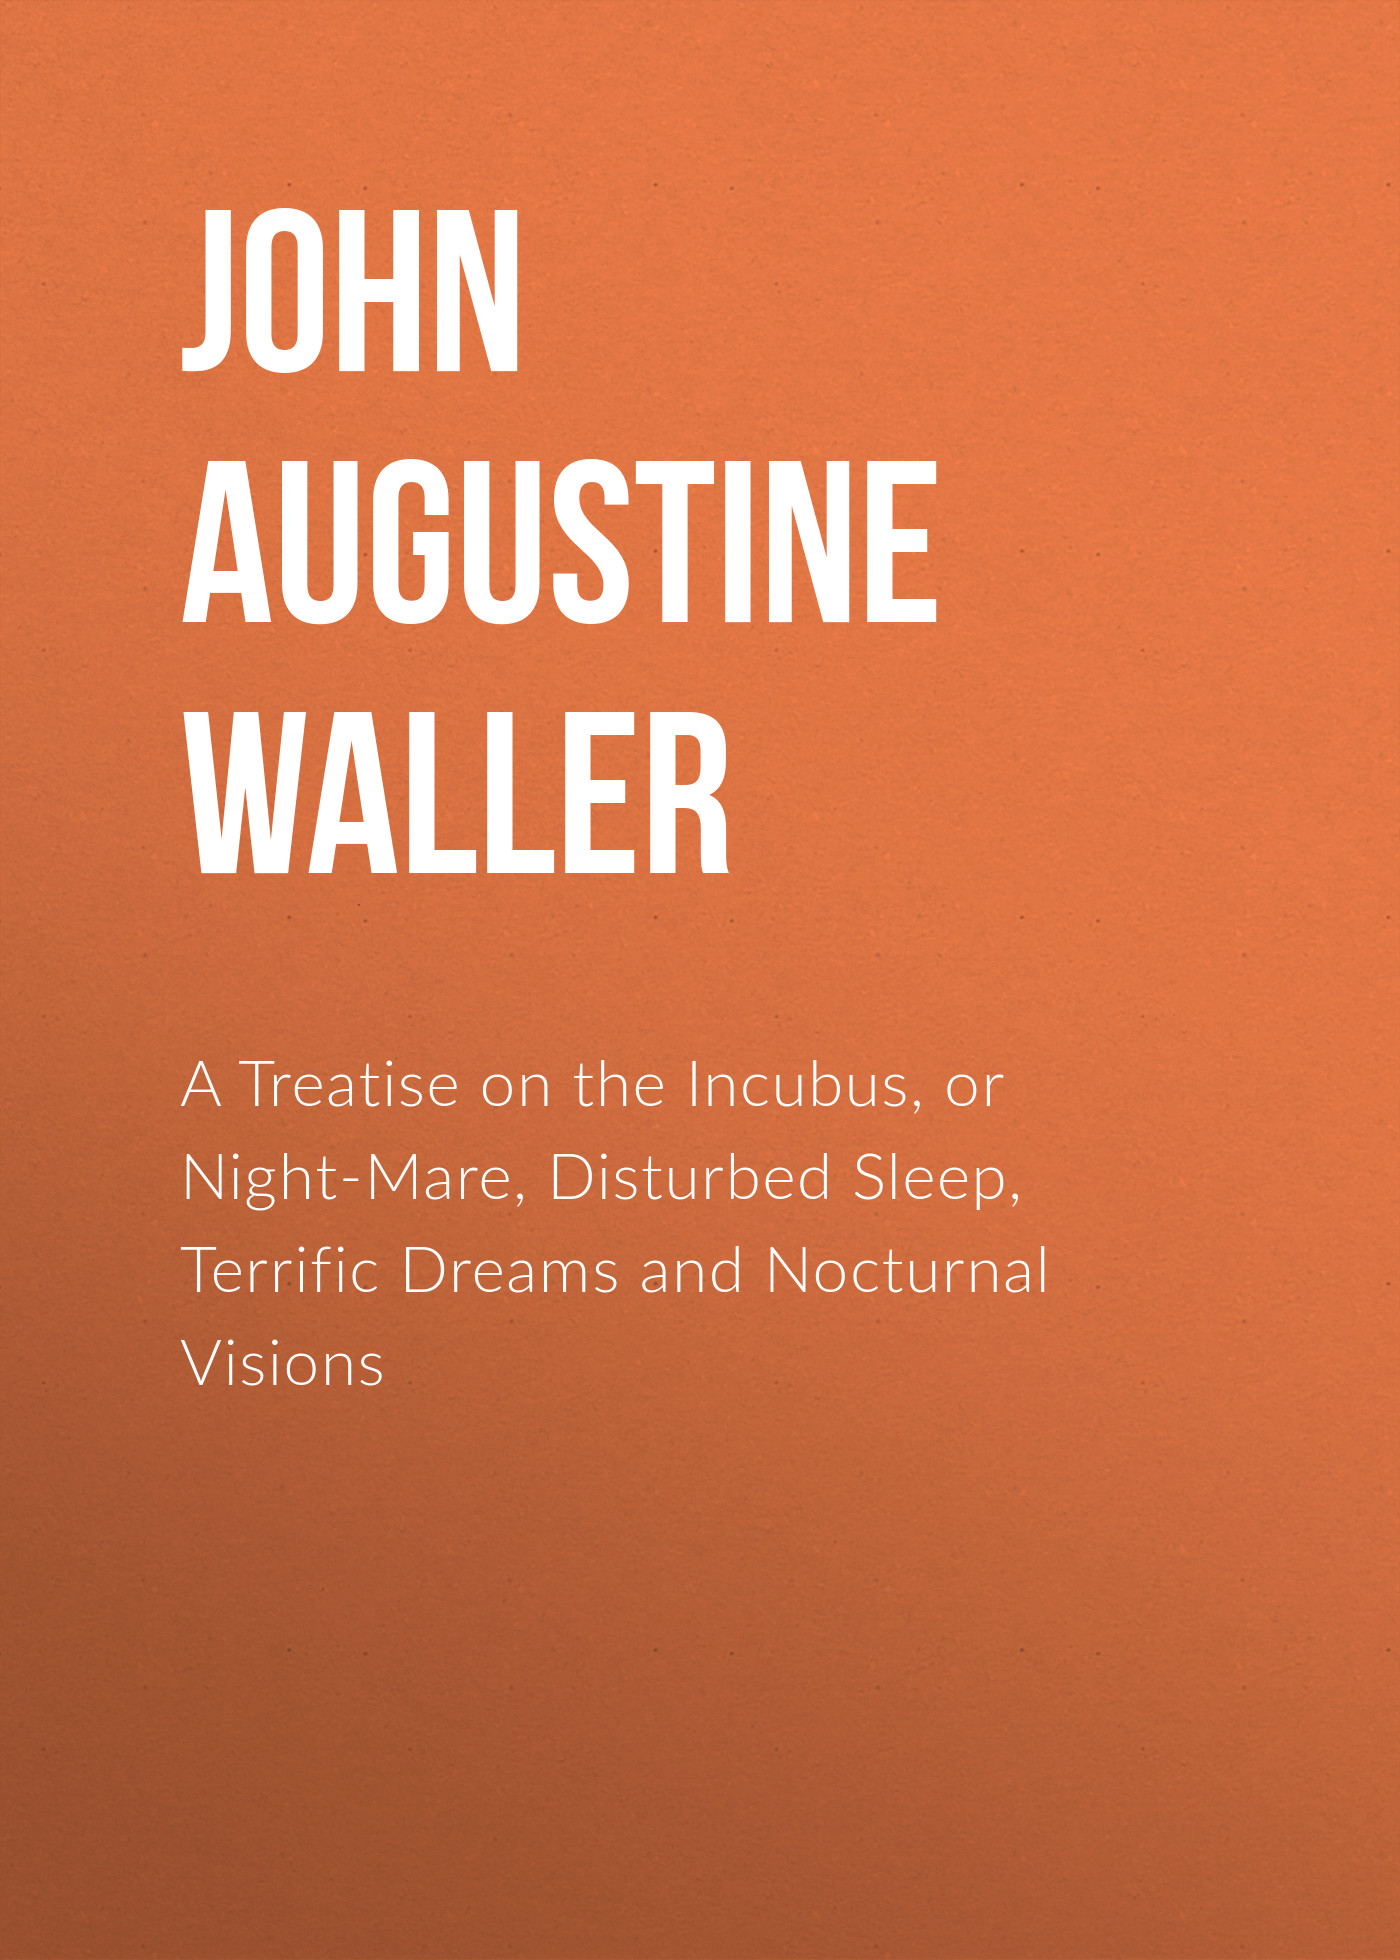 John Augustine Waller A Treatise on the Incubus, or Night-Mare, Disturbed Sleep, Terrific Dreams and Nocturnal Visions andrew gray a treatise on spinning machinery